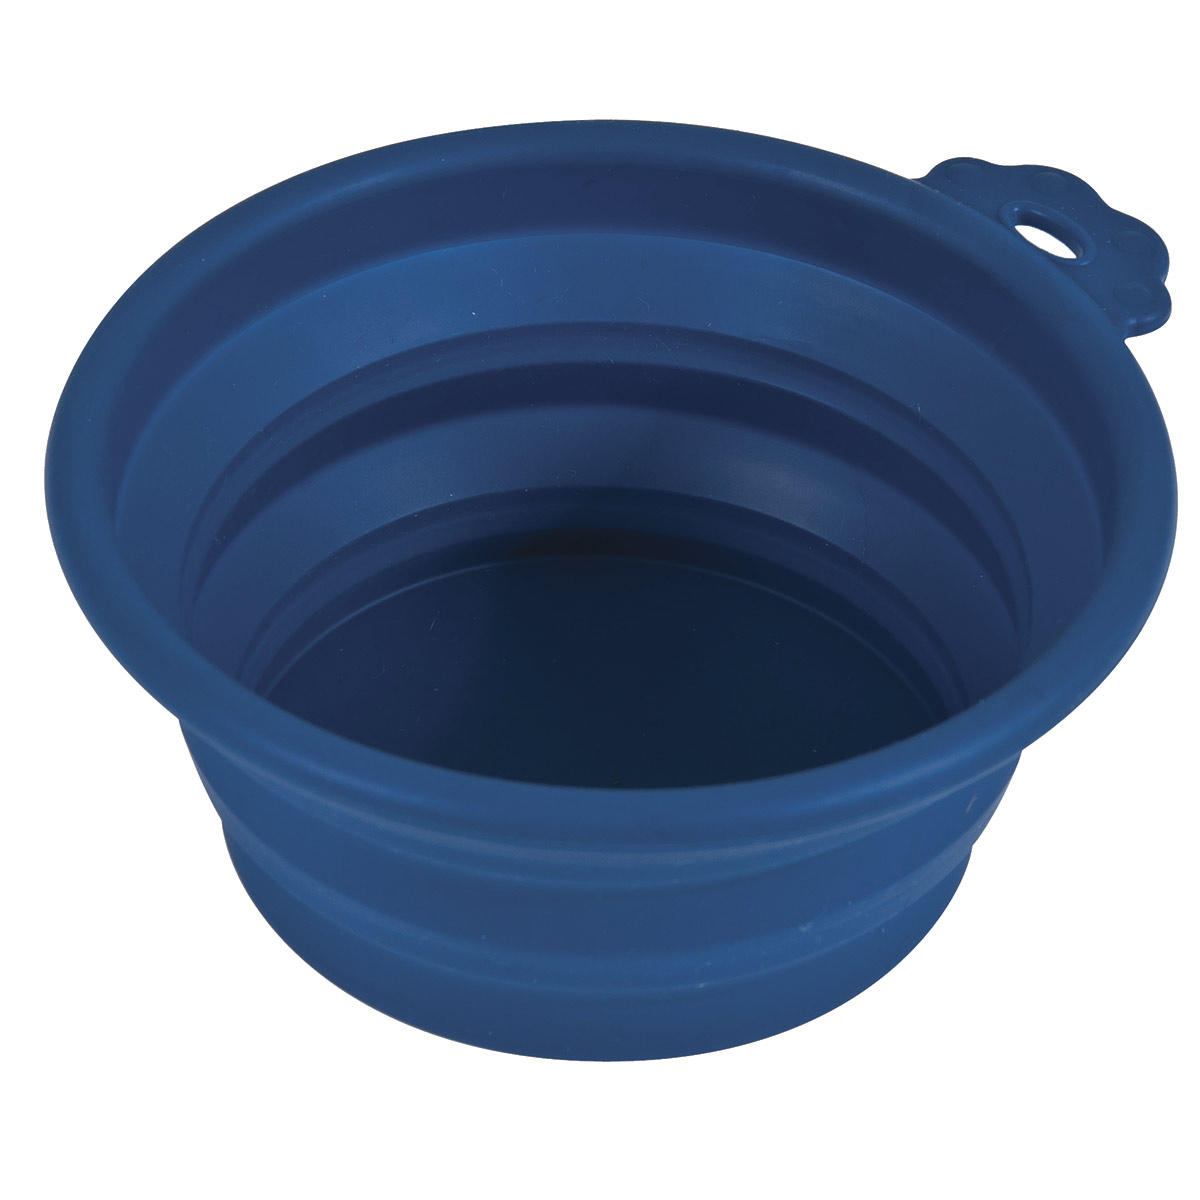 Blue Petmate 3 Cup Collapsible Silicone Travel Bowl for Dogs